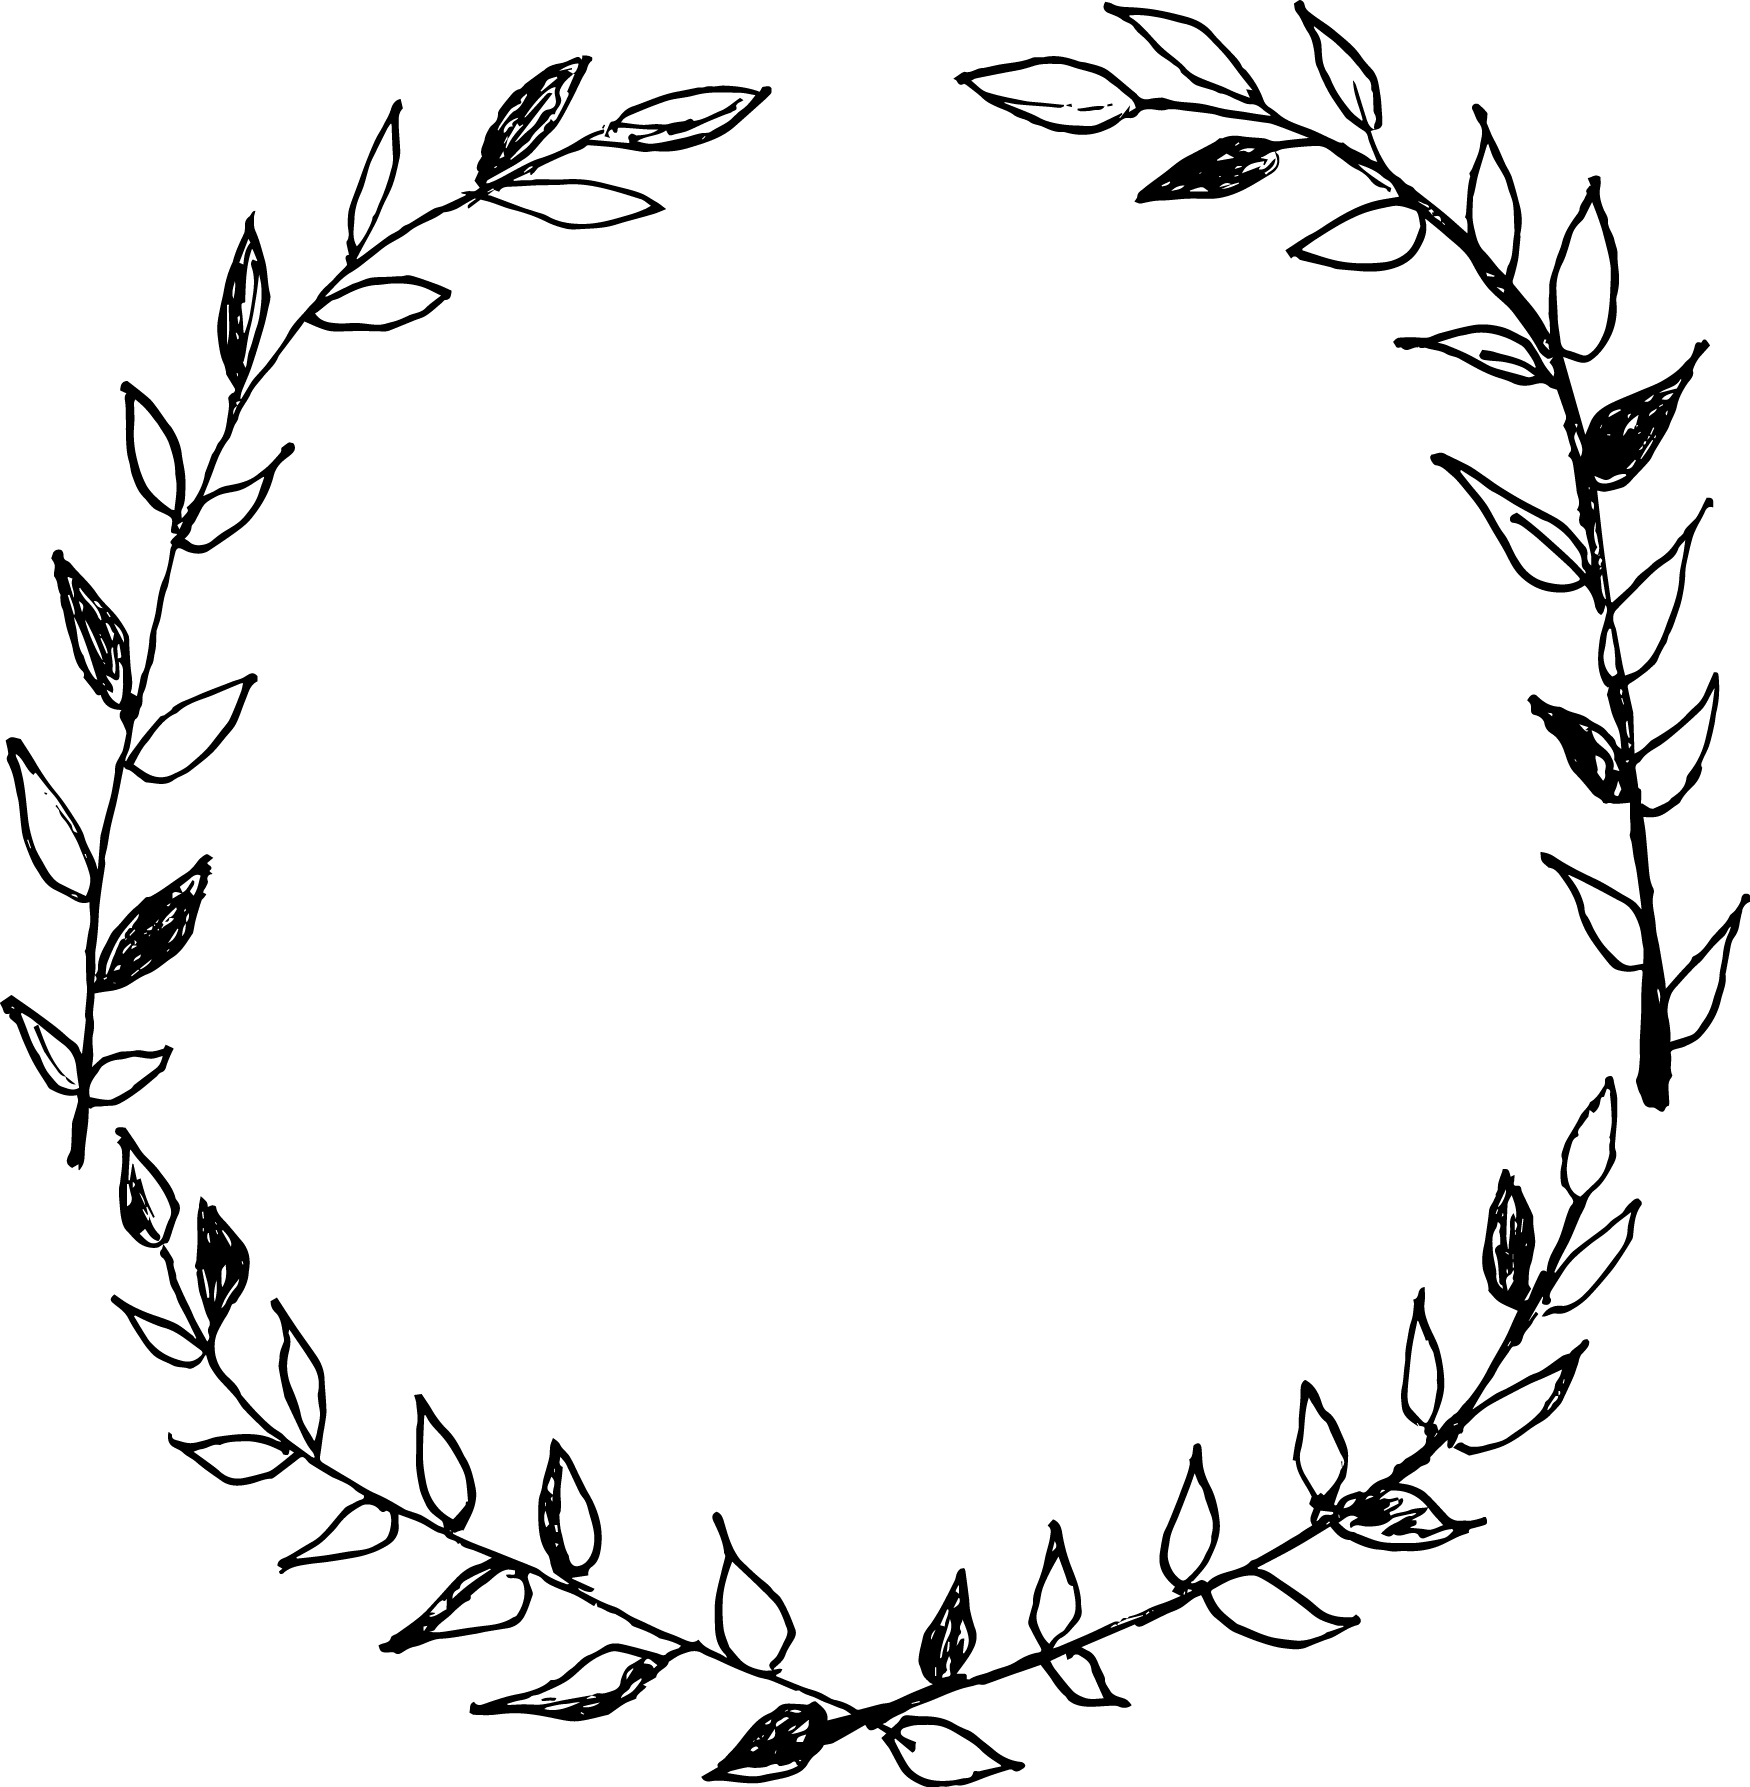 Boho vector laurel wreath. Drawing at getdrawings com